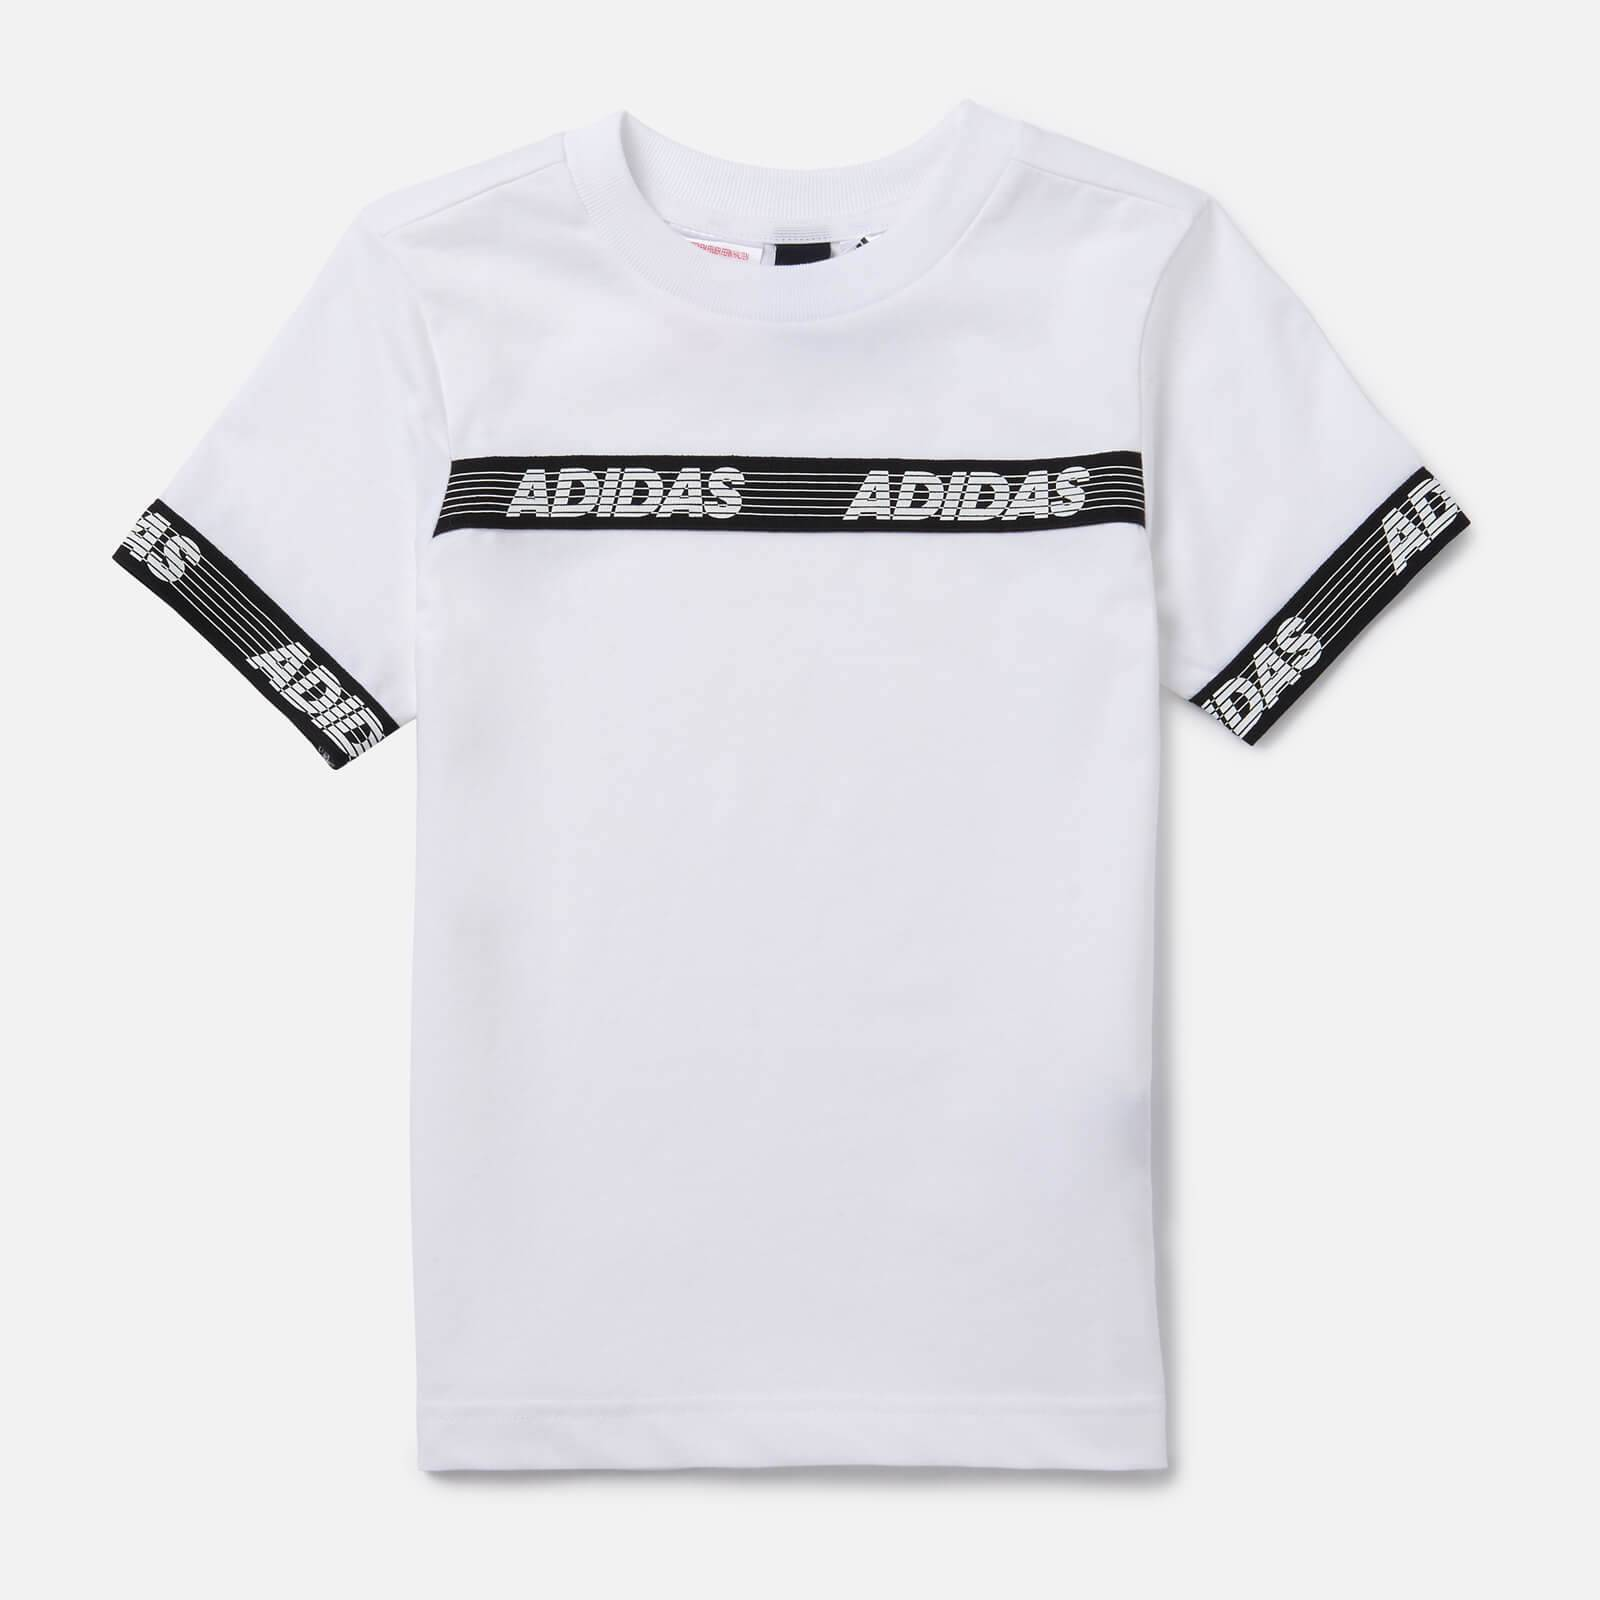 adidas Boys' Young Boys Sid Branded T-Shirt - White - 11-12 Years